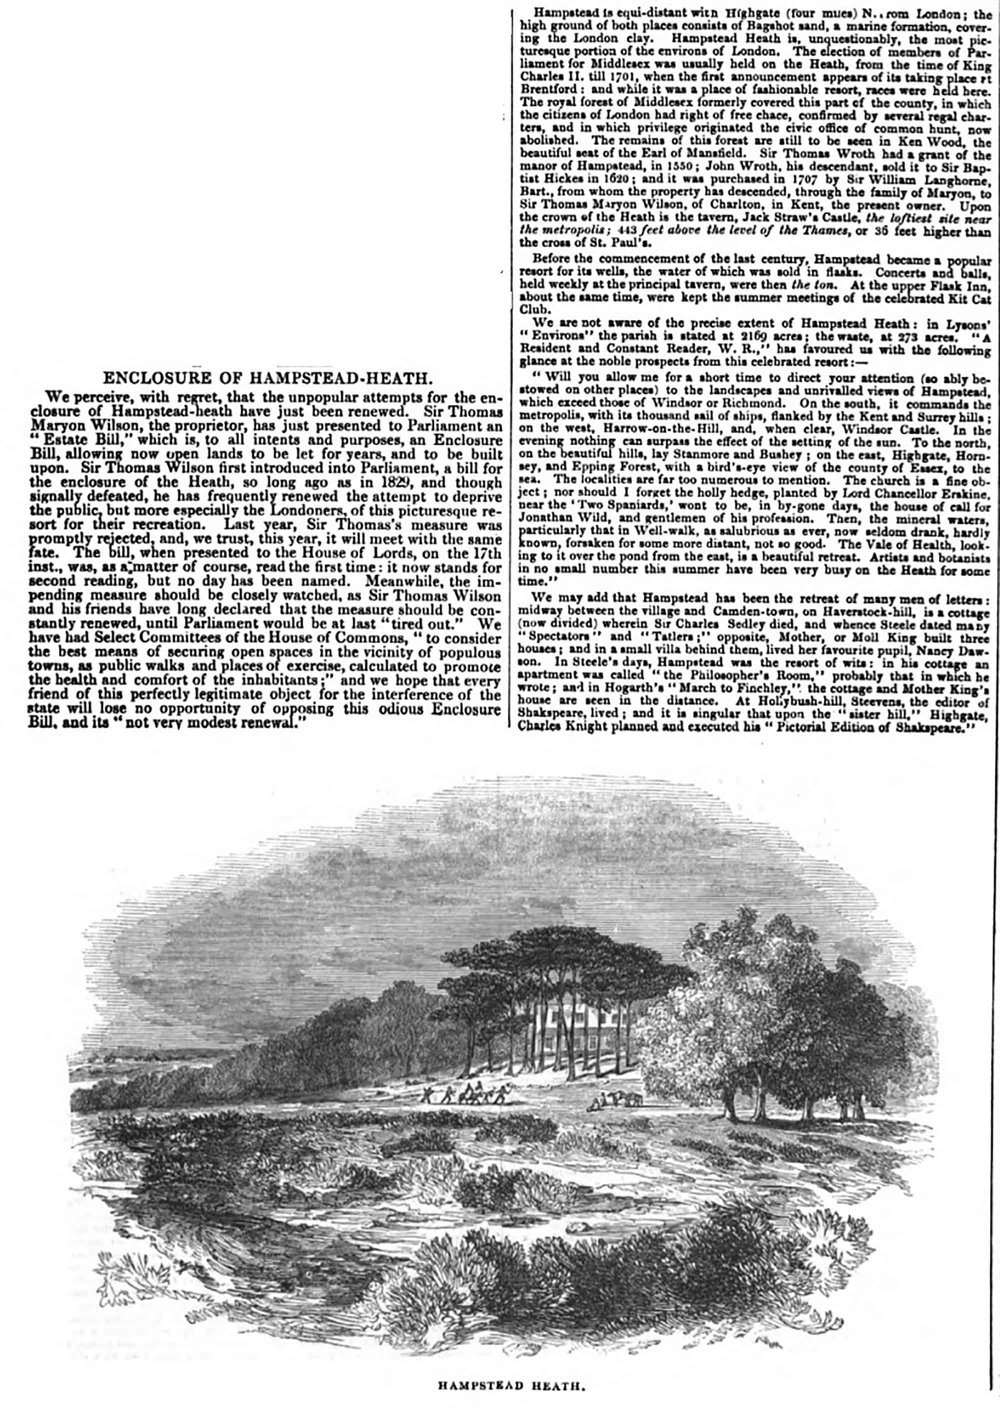 1844 Newspaper clipping about Sir Thomas's plans to enclose the Heath